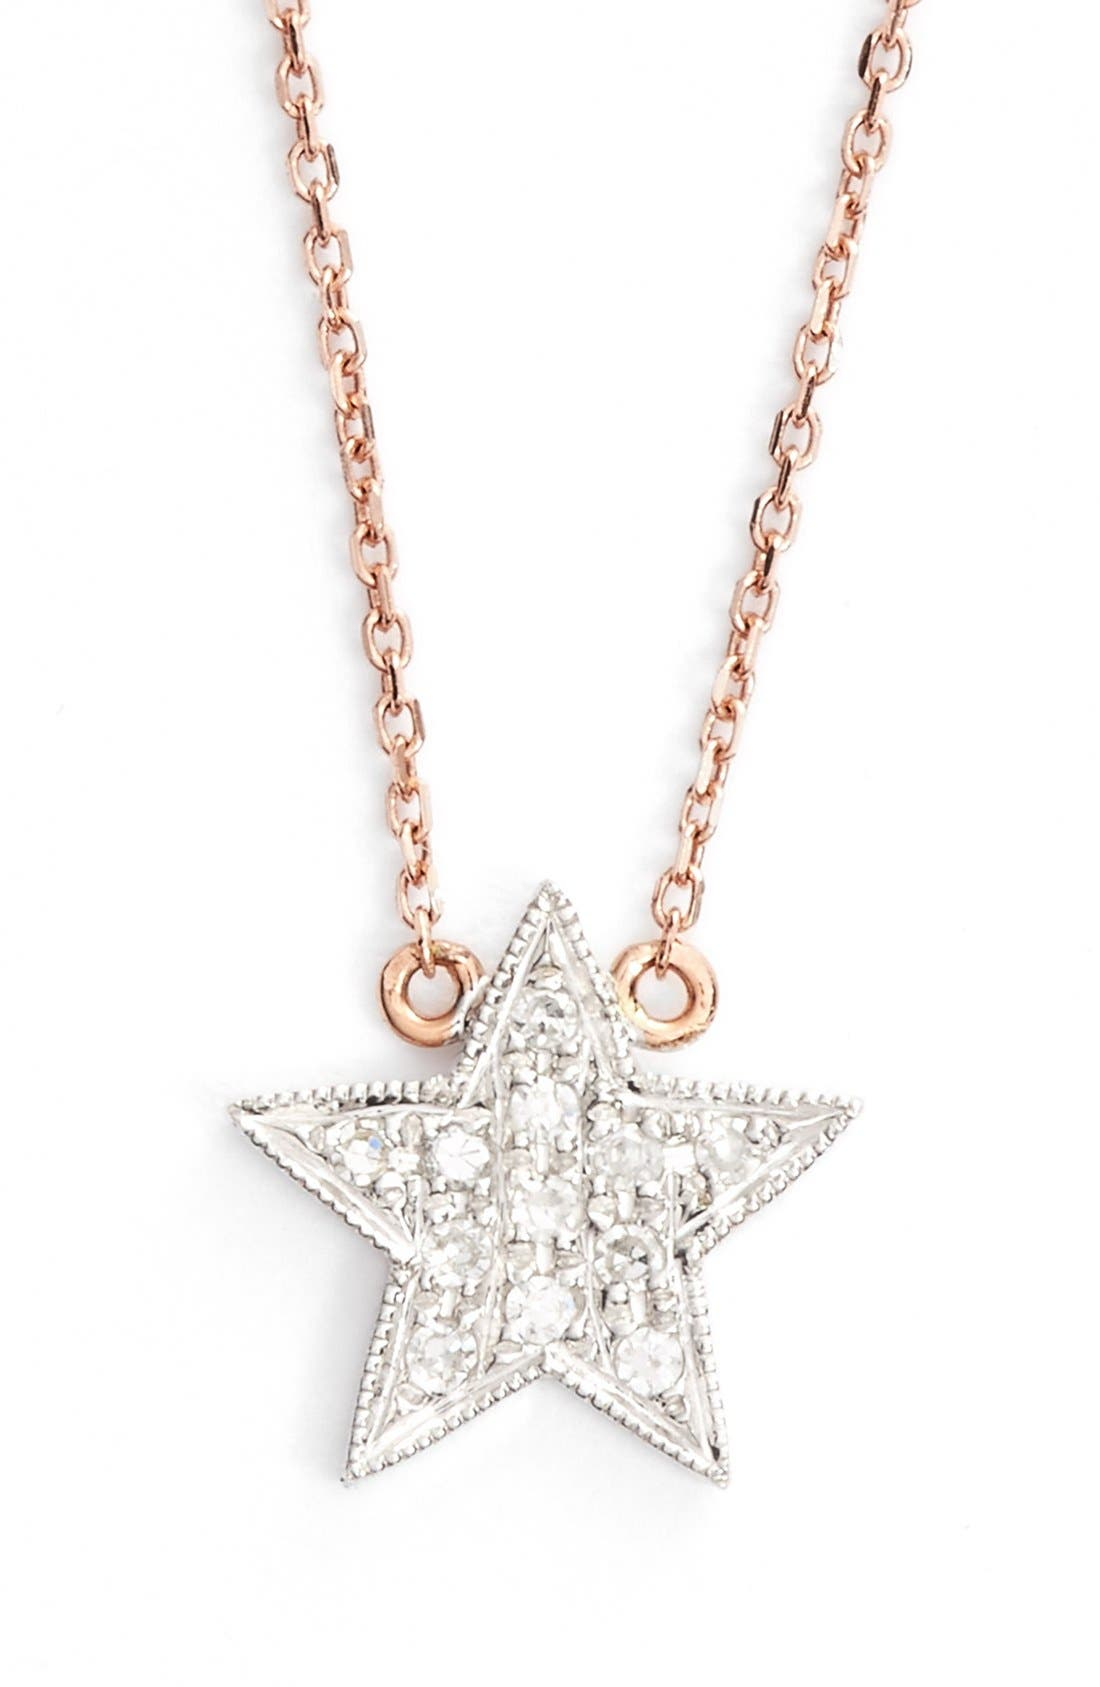 DANA REBECCA DESIGNS 'Julianne Himiko' Diamond Star Pendant